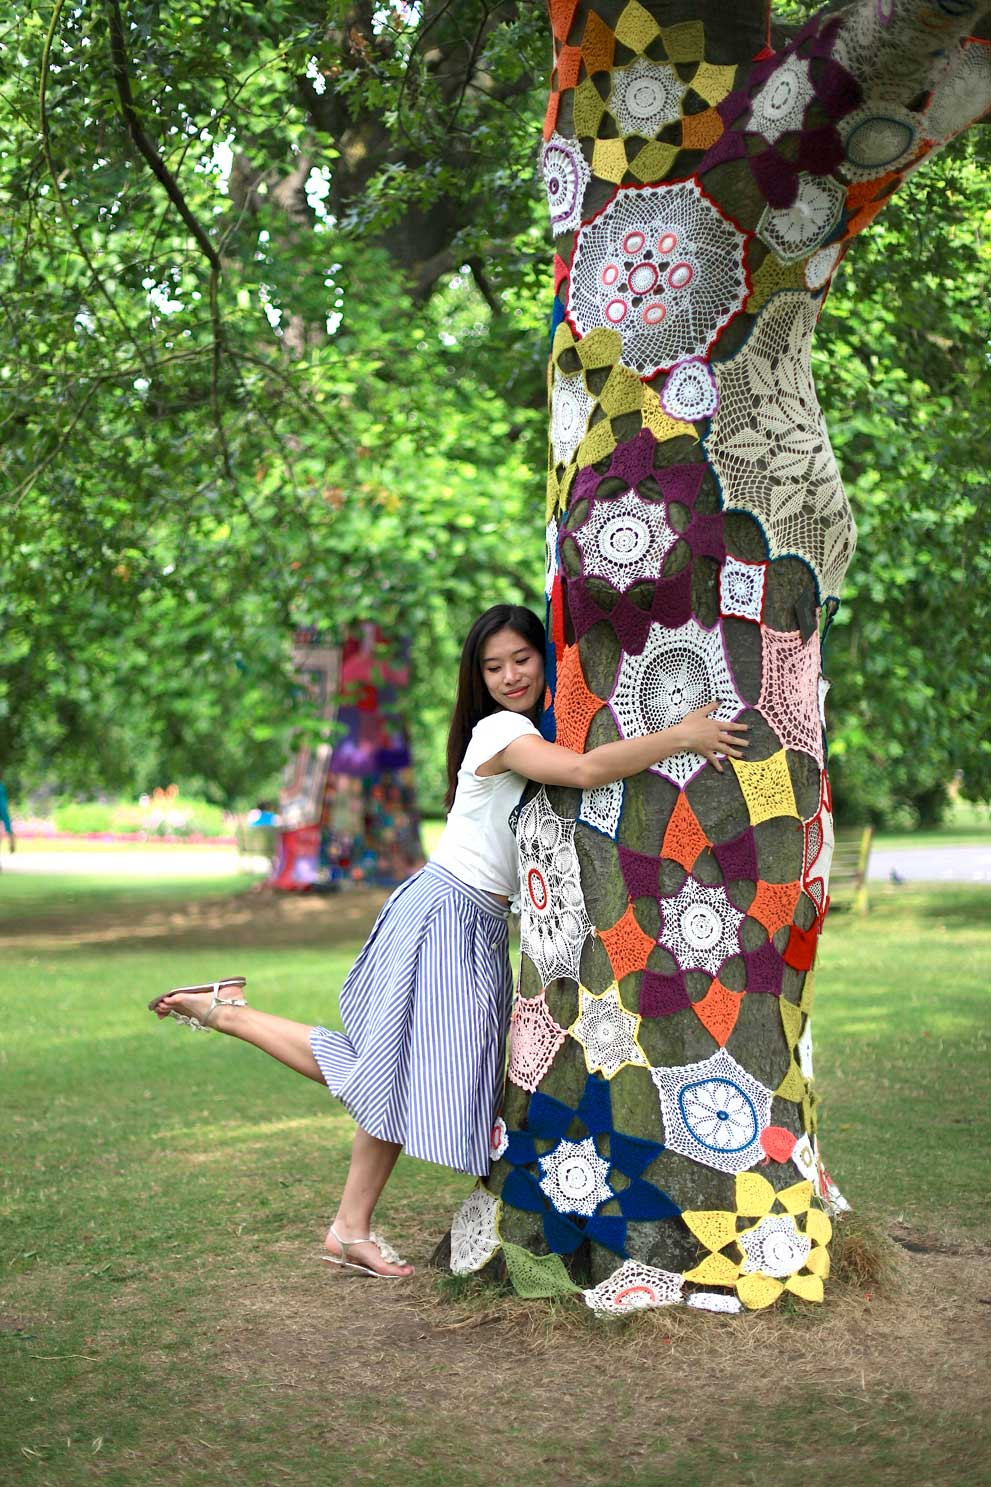 kew-gardens-tree-with-colourful-knitted-blanket